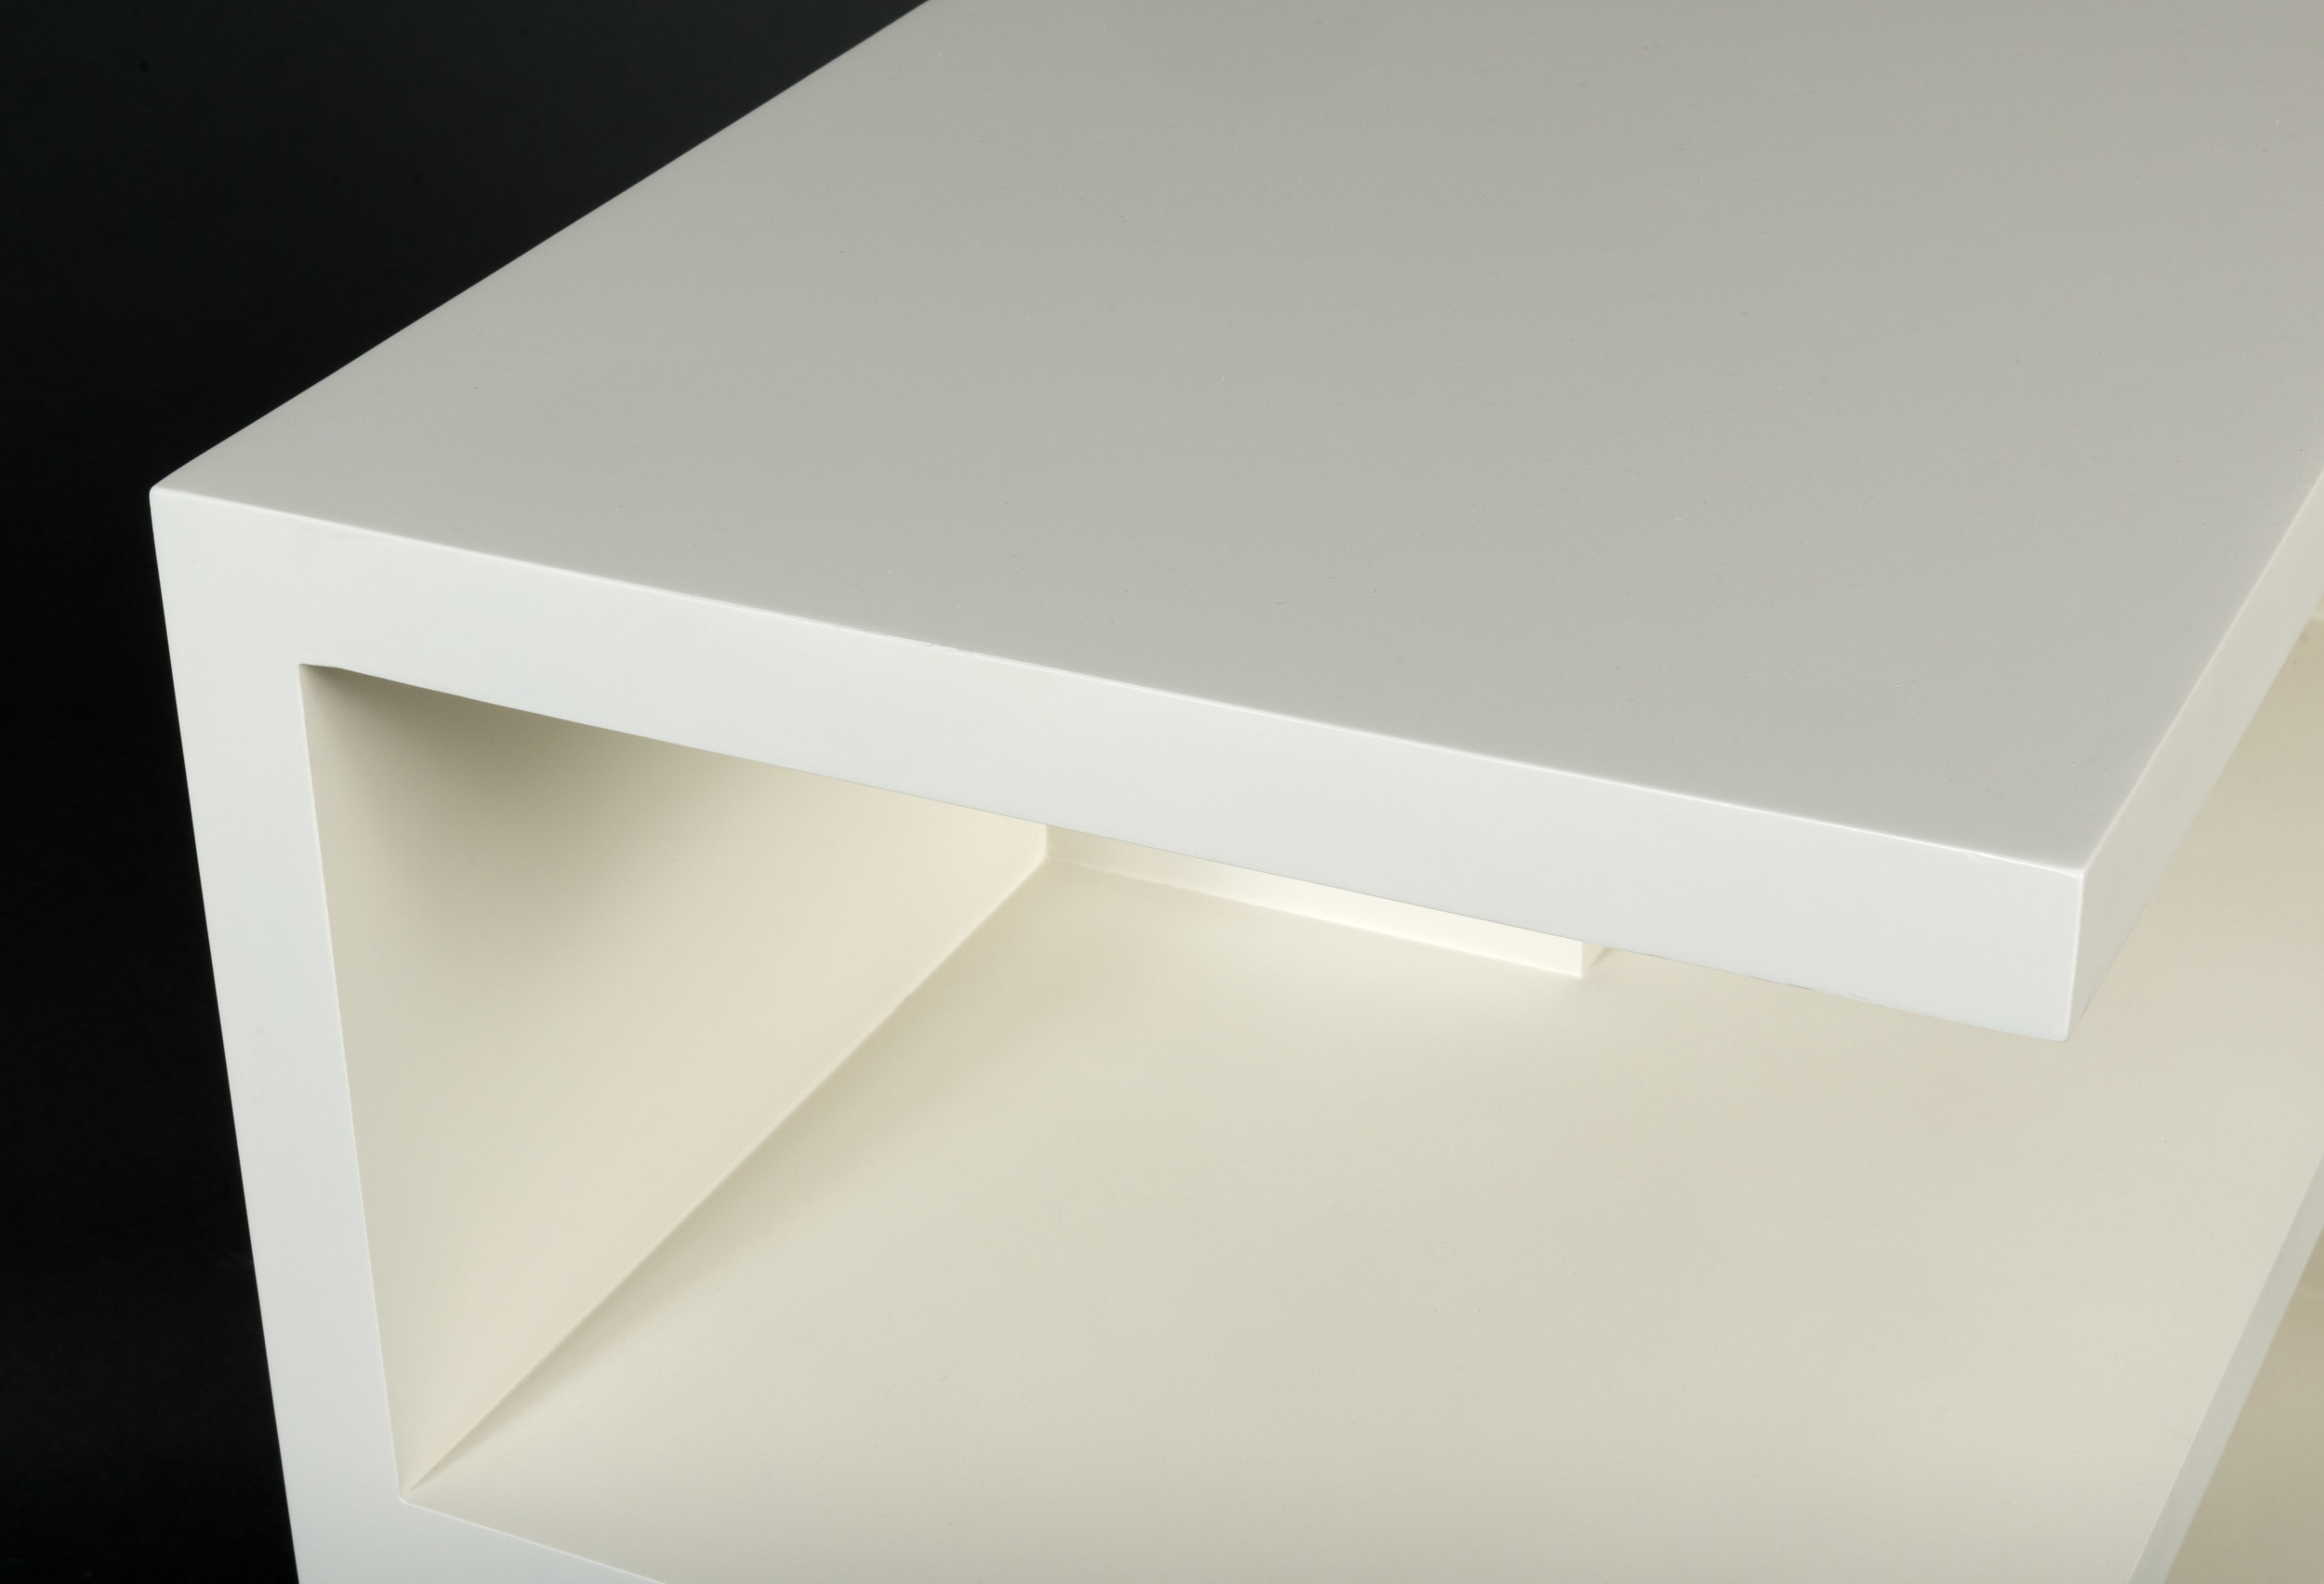 wright table white lacquer-detail.jpg